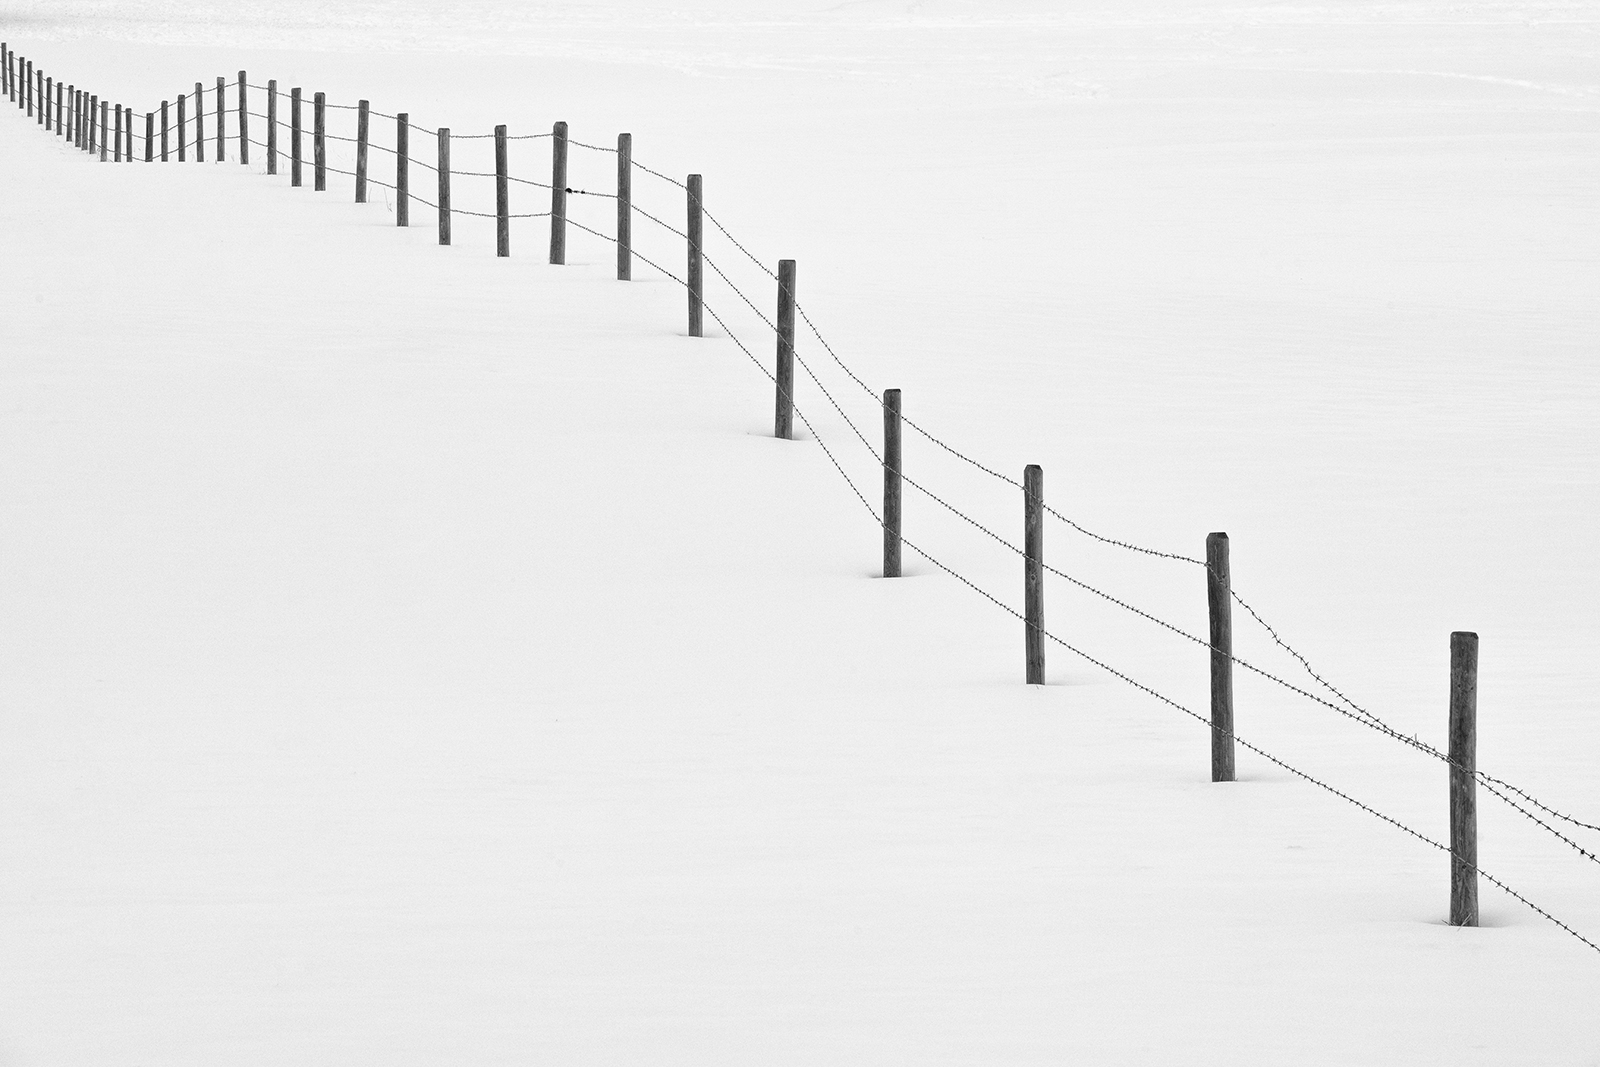 Like bars awaiting notes to be written, a lonely barbed wire fence meanders across a snowy prairie